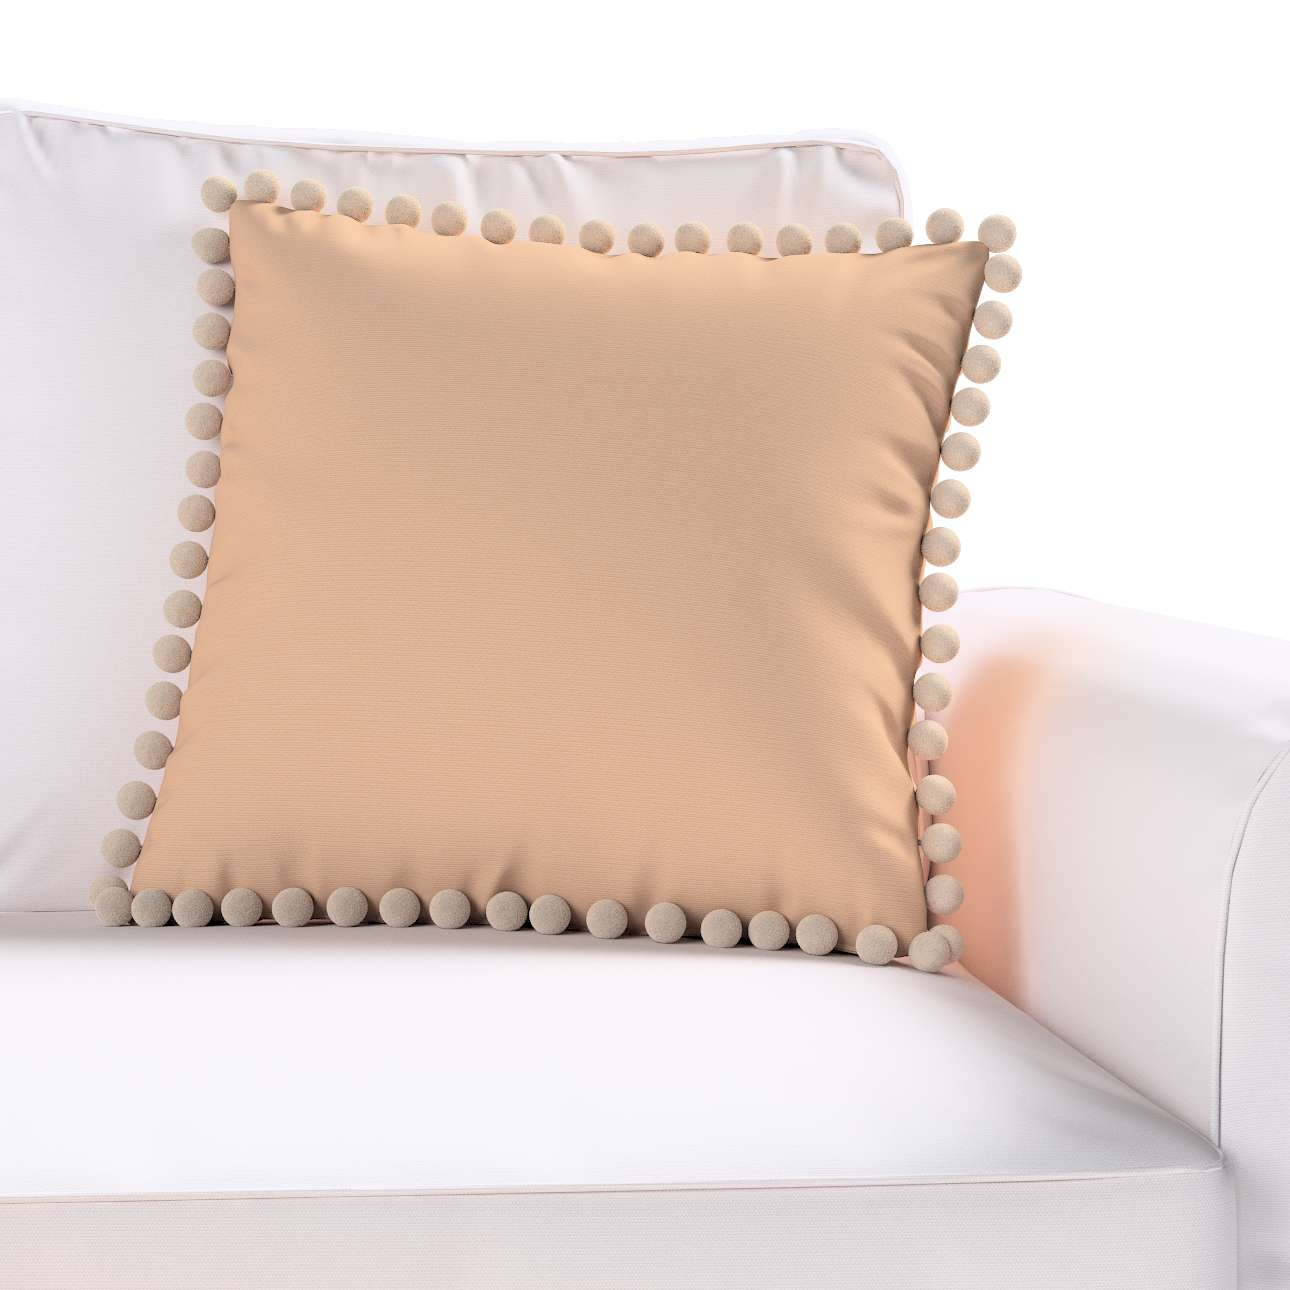 Daisy cushion covers with pom poms in collection Cotton Story, fabric: 702-01